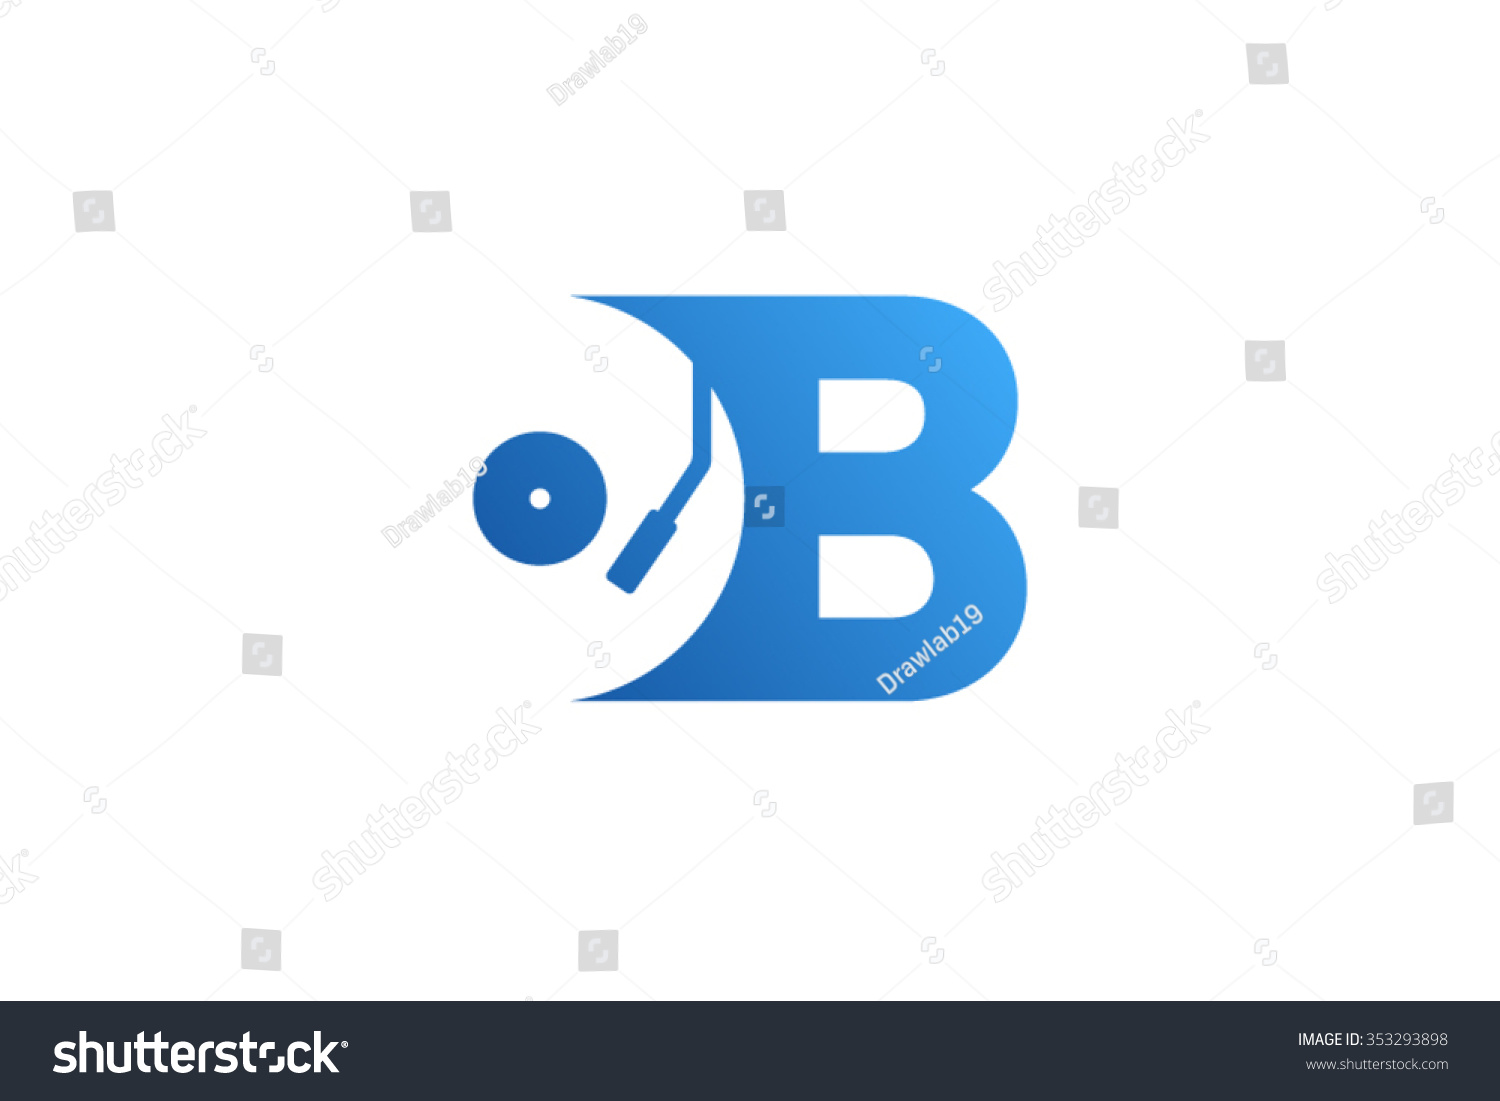 letter b logo record vinyl logo stock vector 353293898 shutterstock. Black Bedroom Furniture Sets. Home Design Ideas